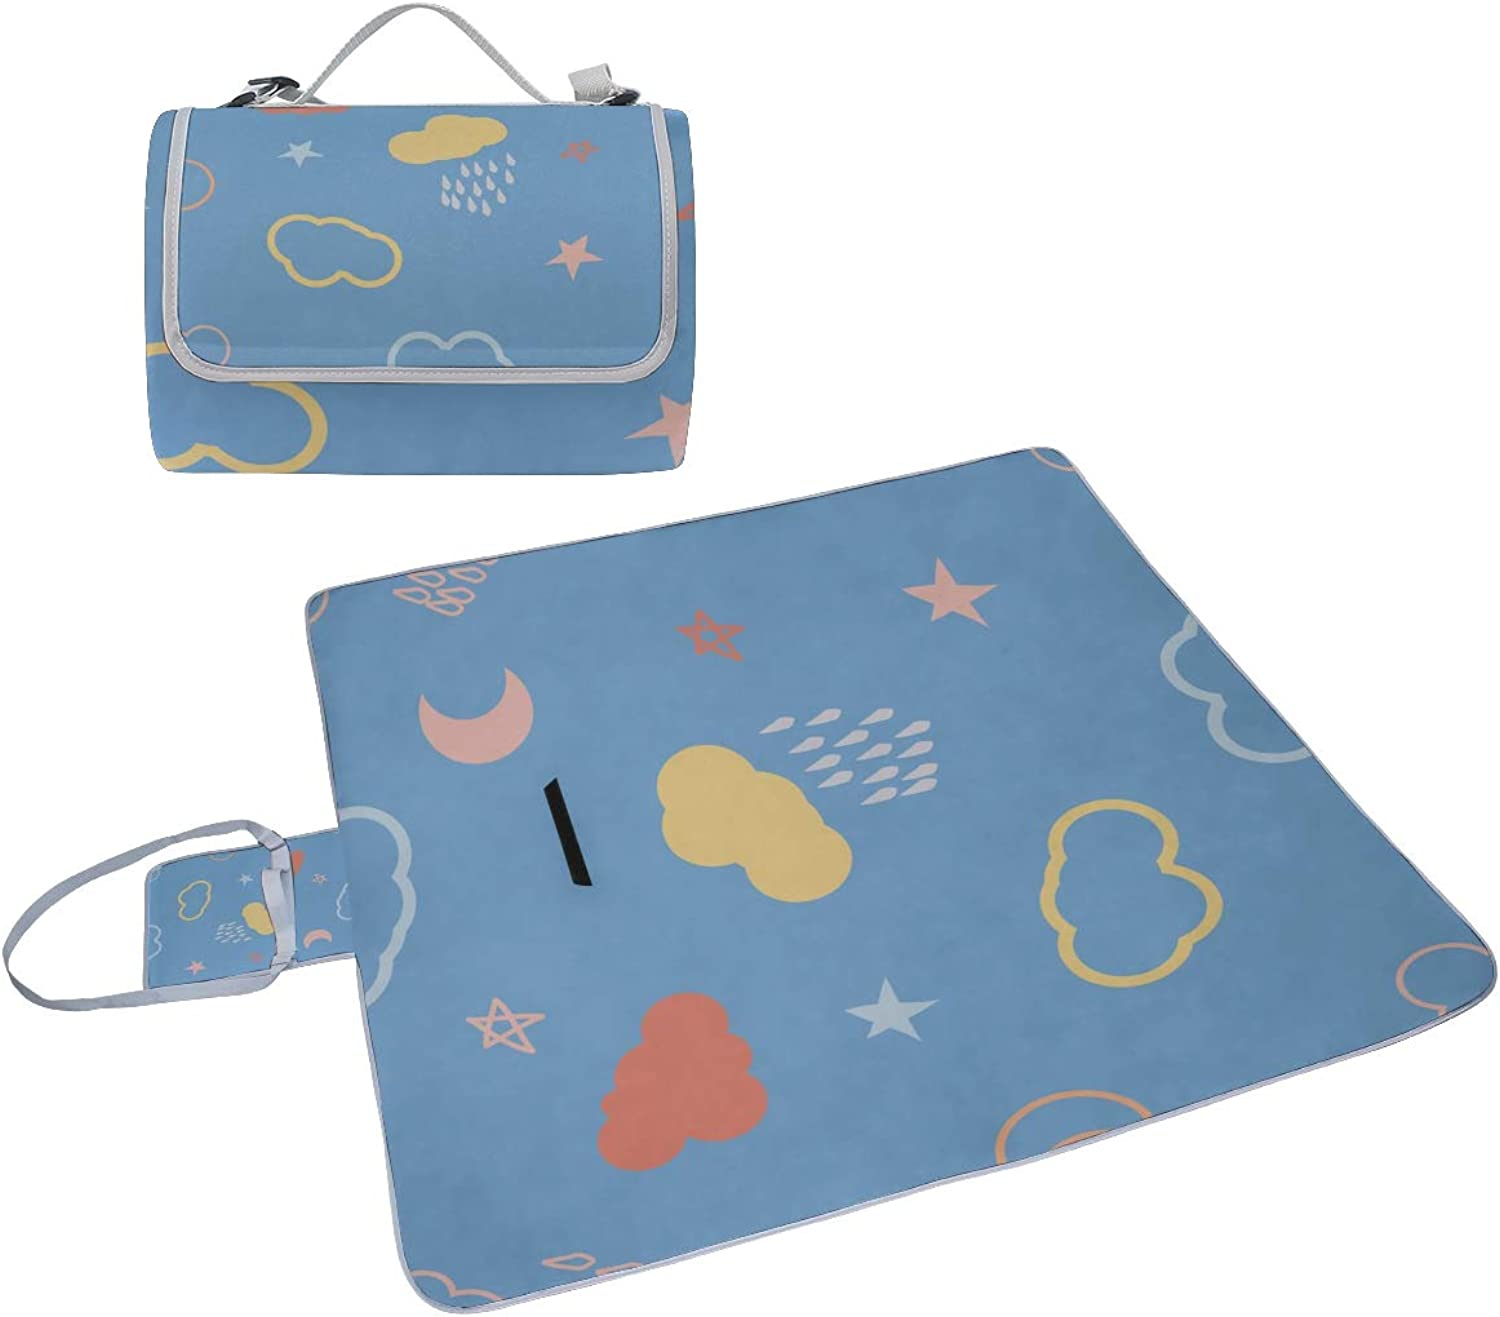 Prevent Fading Picnic Blanket for Girls Star Rain Design Style Cute Beach Mat Prevent Fading Foldable with Handle Outdoor Blanket Unisex Camping Camping 57 x59